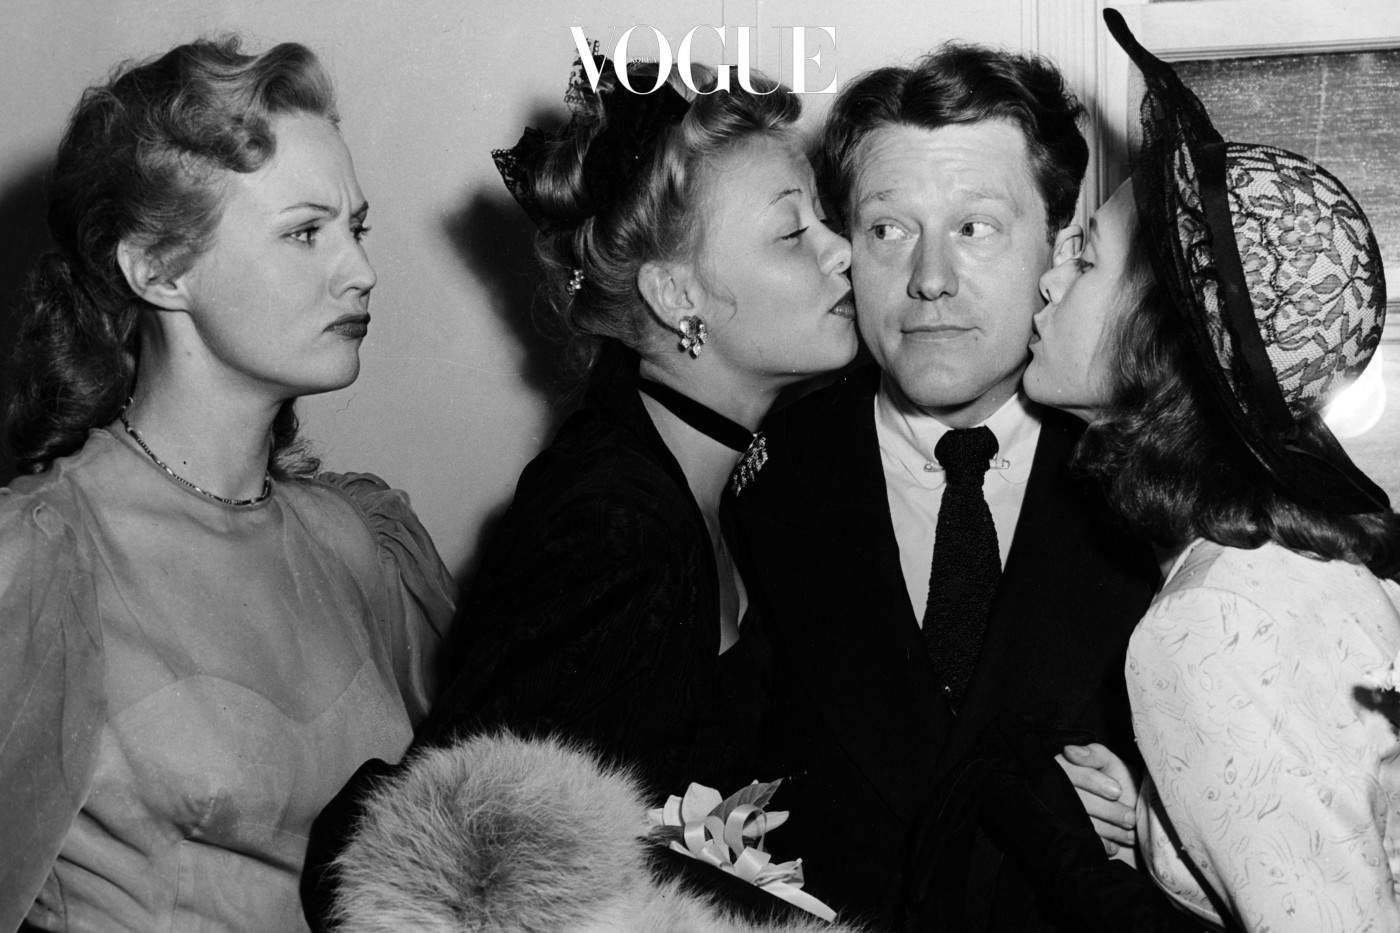 Actresses Vera Ellen and Cathy O'Donnell kiss the cheek of actor Michael O'Shea on his wedding day, as his bride Virginia Mayo frowns, at the Little Church of the Flowers, Hollywood, 1947. (Photo by Hulton Archive/Getty Images)